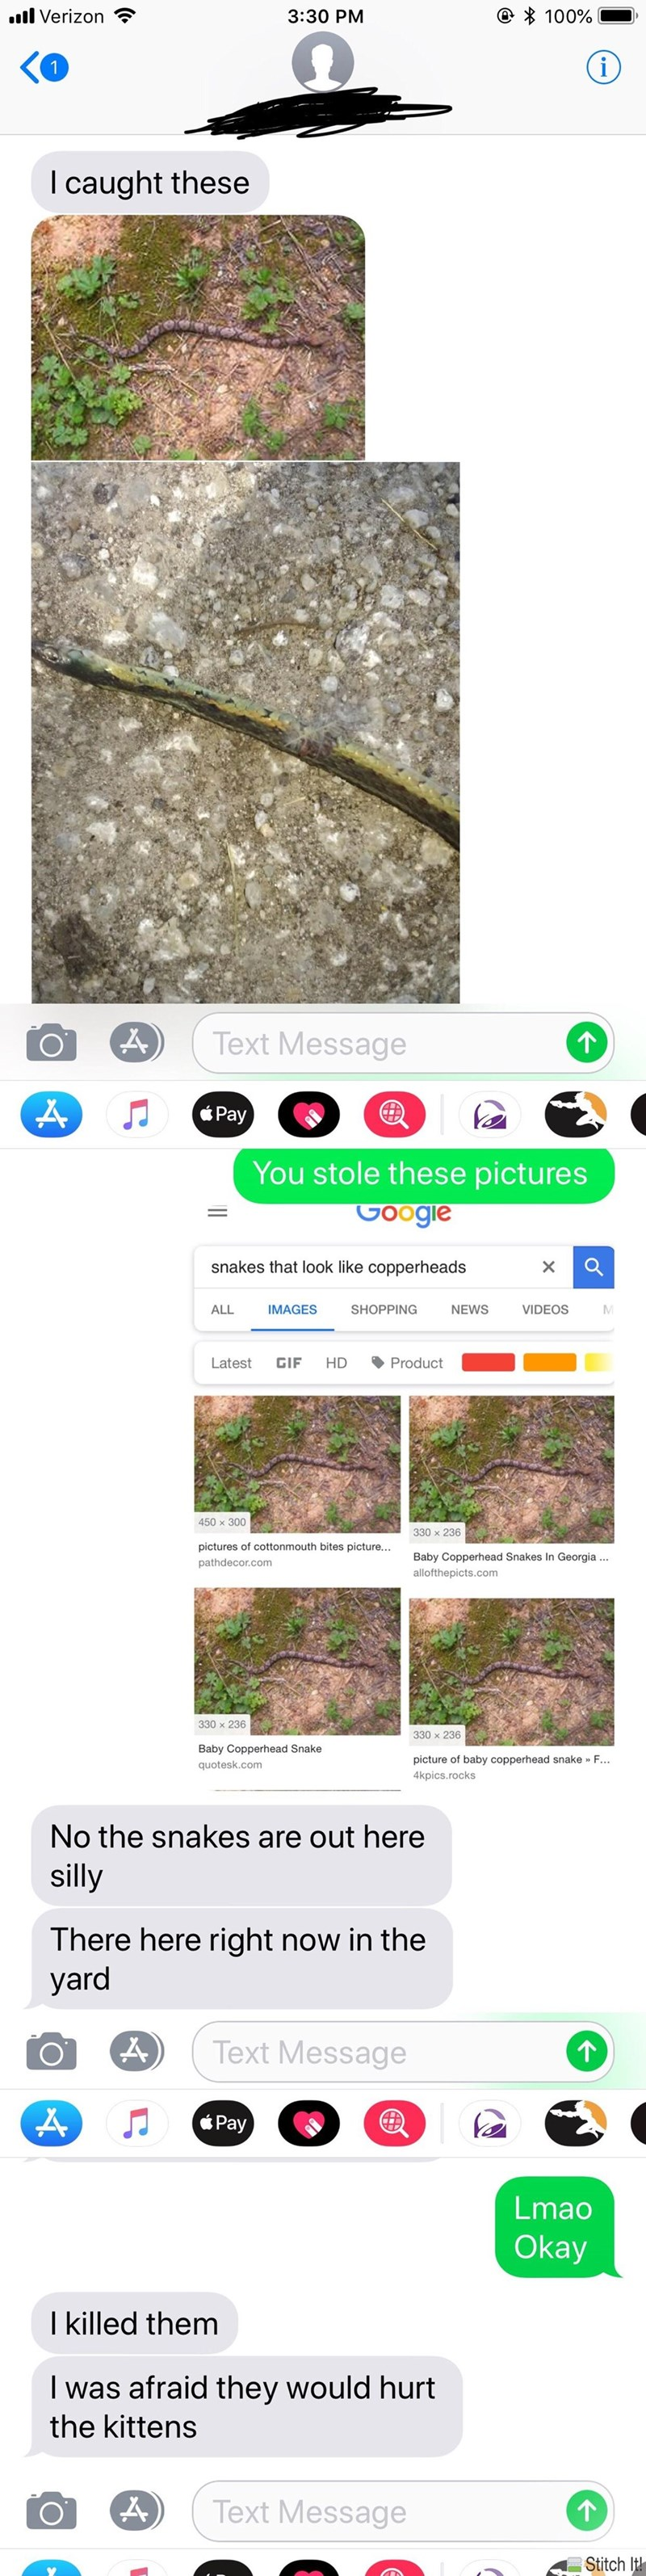 picture of snakes I caught these Text Message Pay You stole these pictures Google snakes that look like copperheads X ALL IMAGES SHOPPING NEWS VIDEOS Latest GIF HD Product 450 x 300 330 x 236 pictures of cottonmouth bites picture... Baby Copperhead Snakes In Georgia allofthepicts.com pathdecor.com 330 x 236 330 x 236 Baby Copperhead Snake picture of baby copperhead snake» F... quotesk.com 4kpics.rocks No the snakes are out here silly There here right now in the yard Text Message Pa